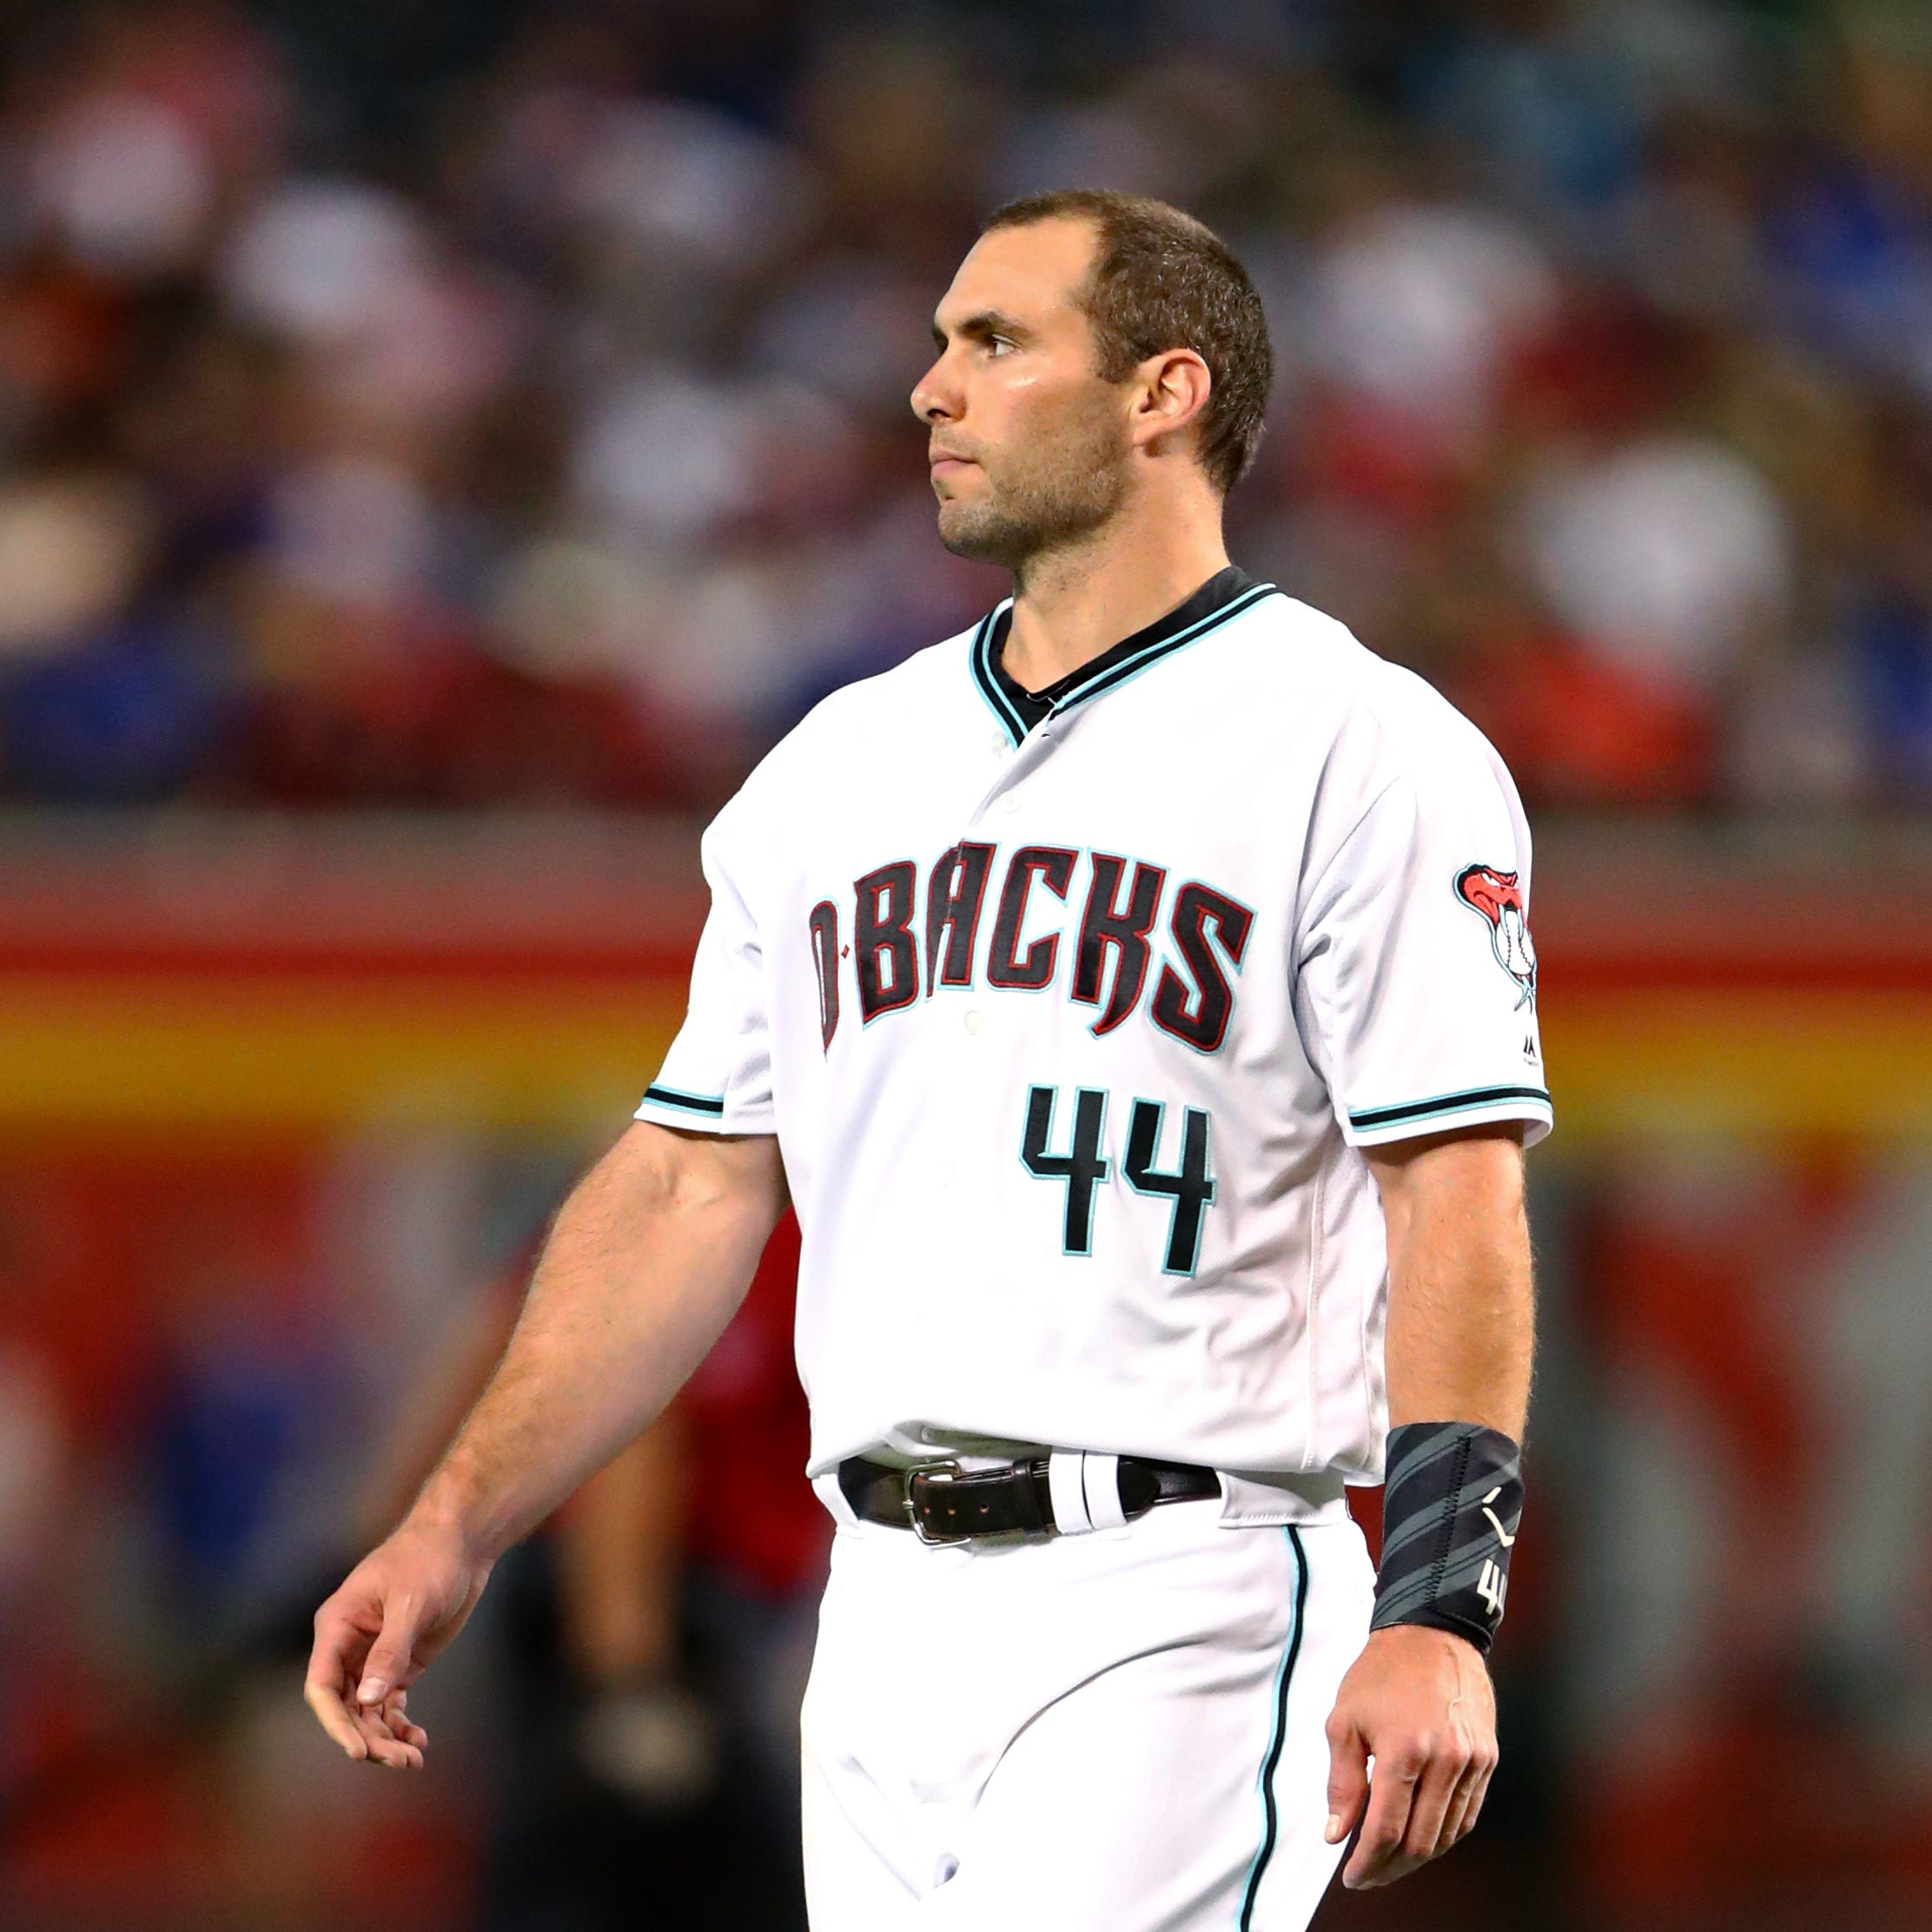 Diamondbacks' decline raises questions about Paul Goldschmidt's future